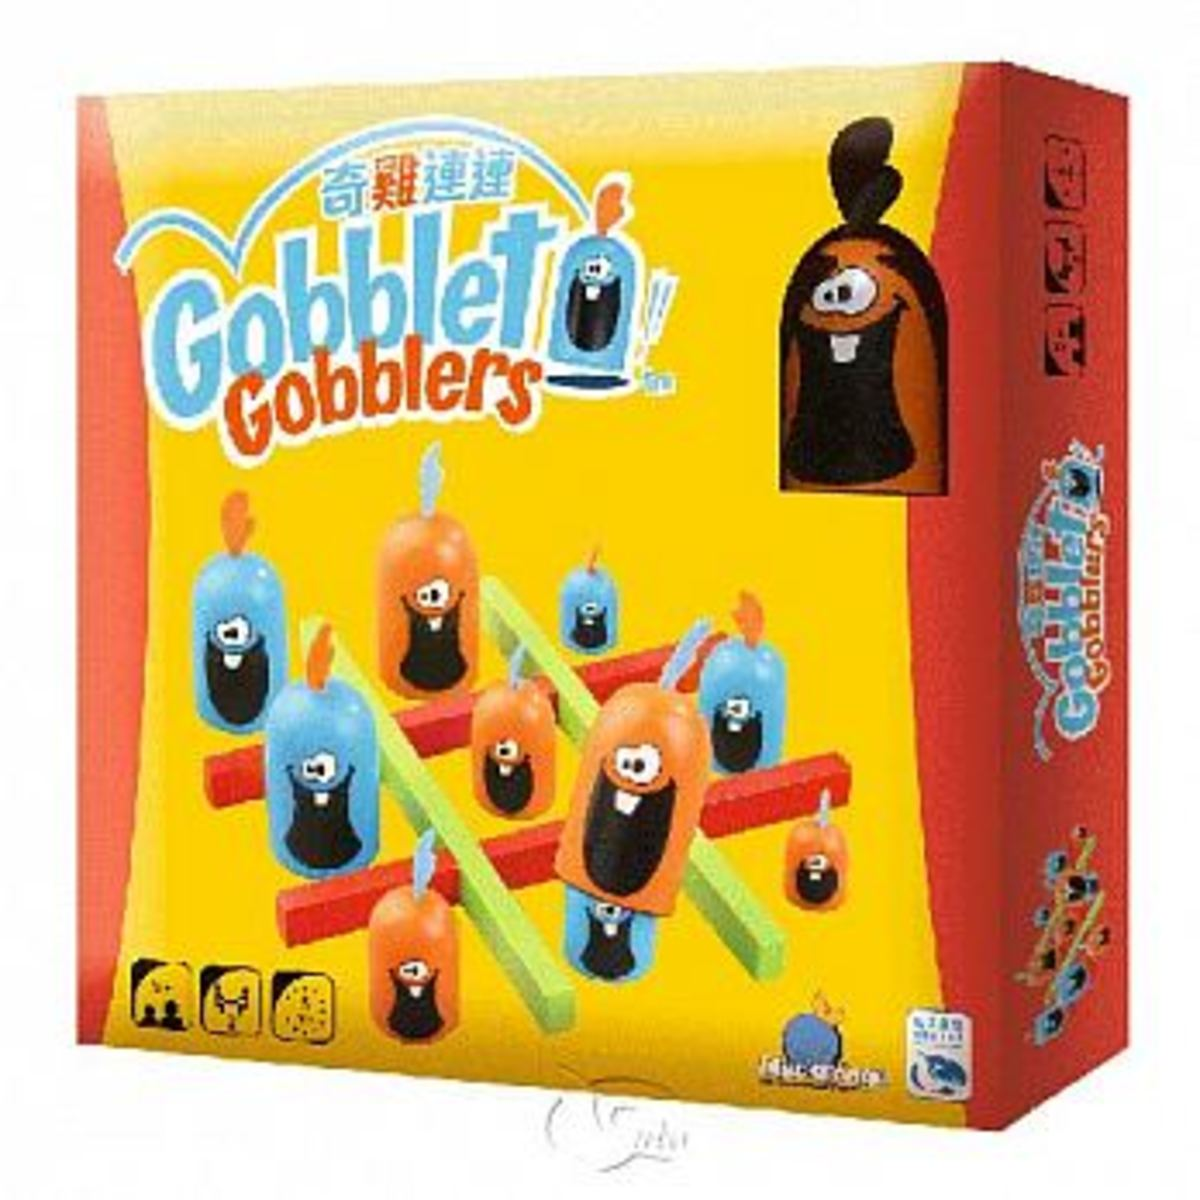 Gobblet Gobblers (Chinese Version)